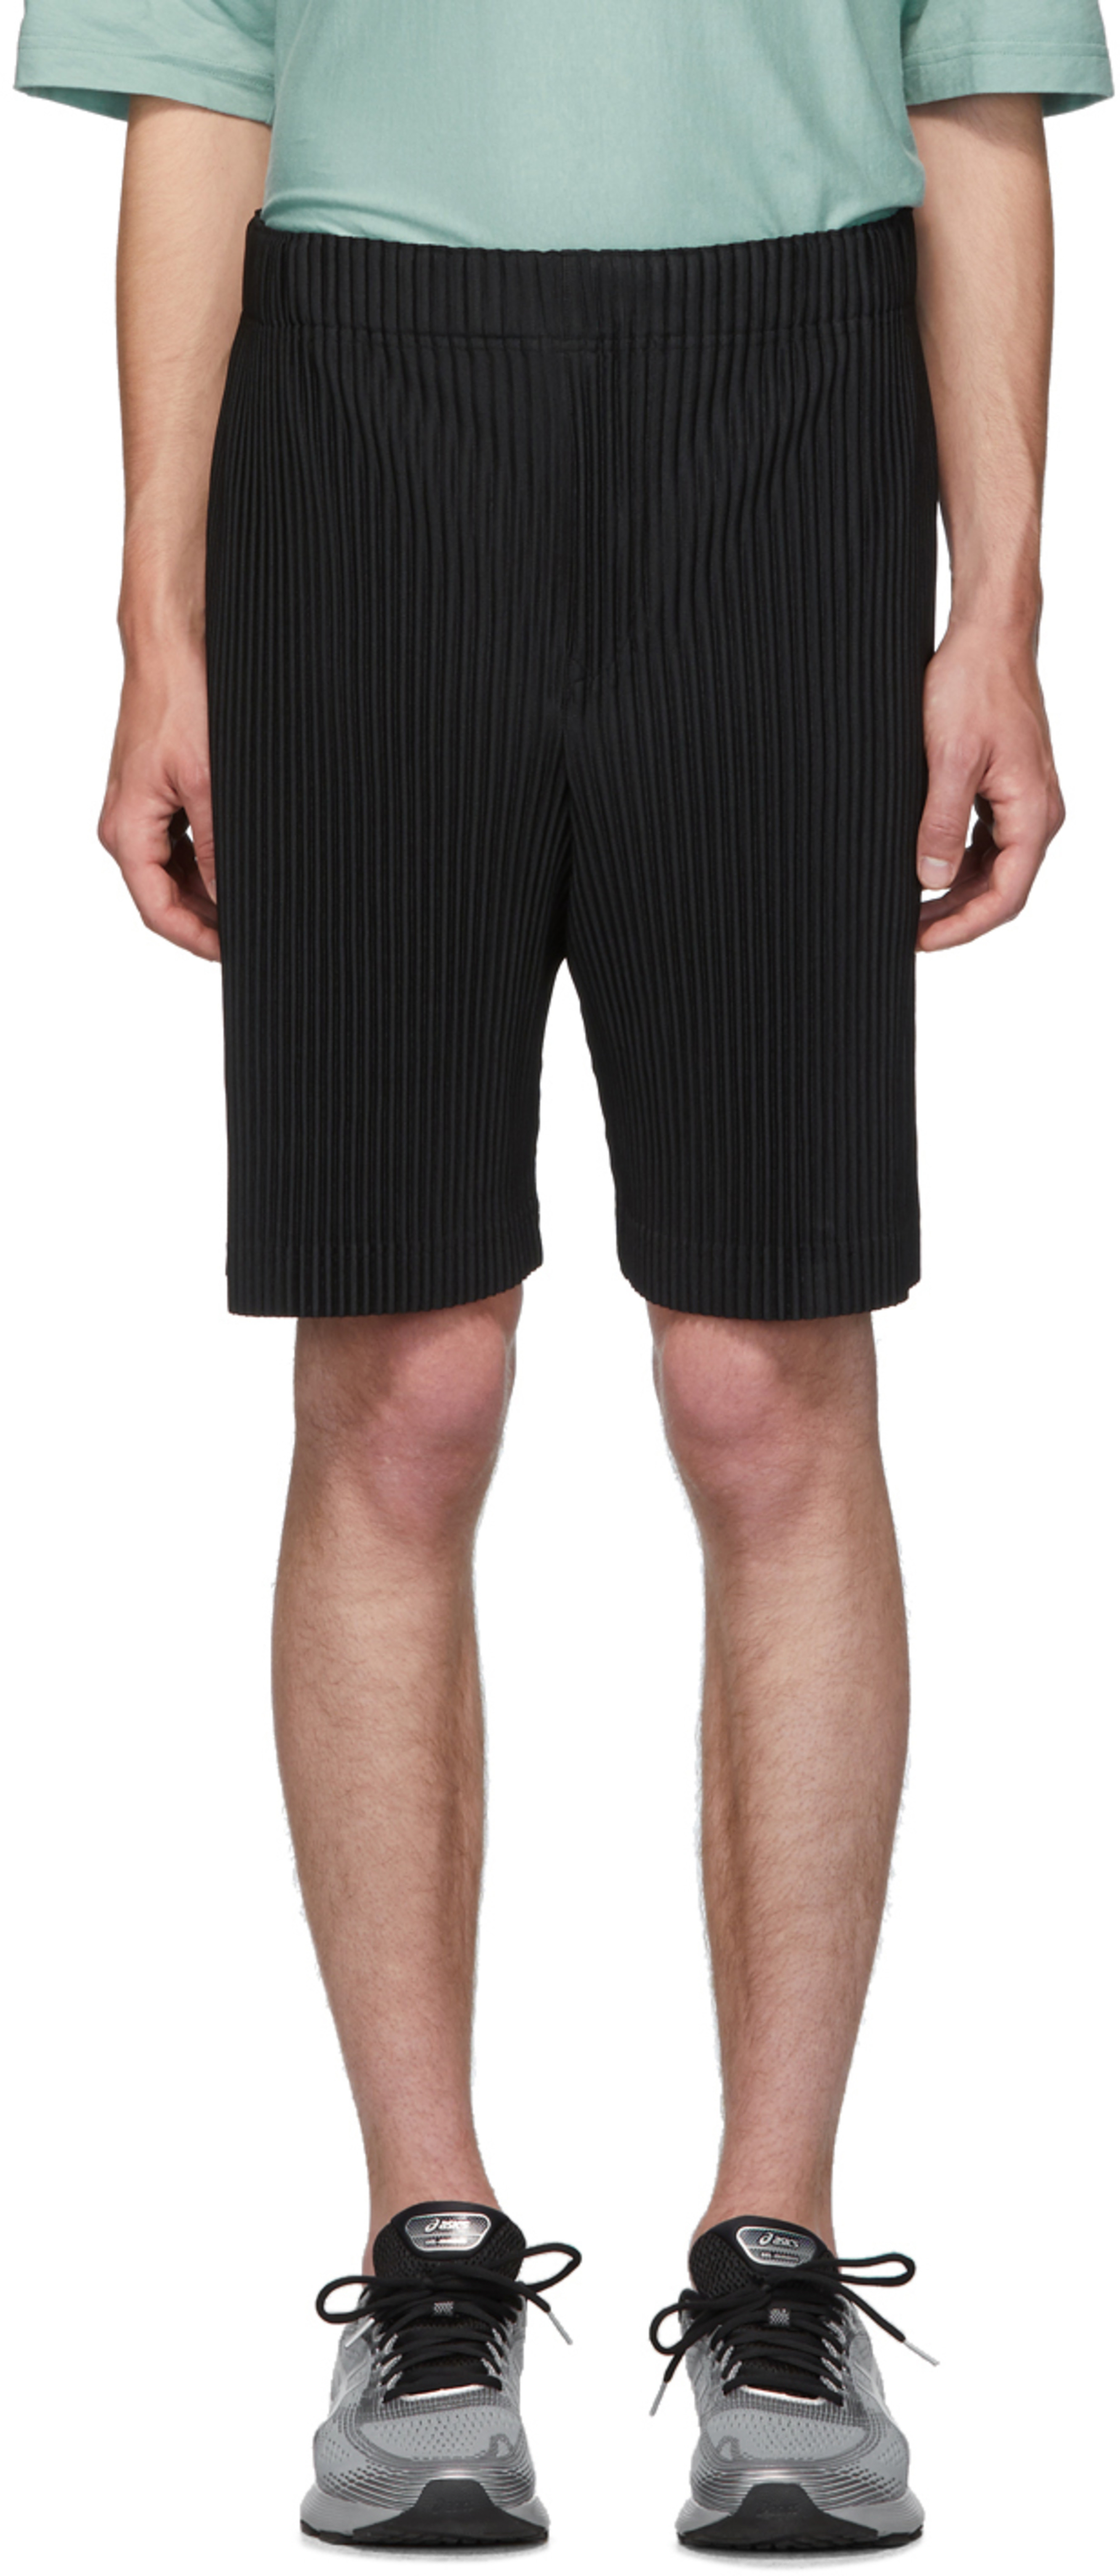 Black June 1 Pleats Mc Bottom Shorts roCdxBe